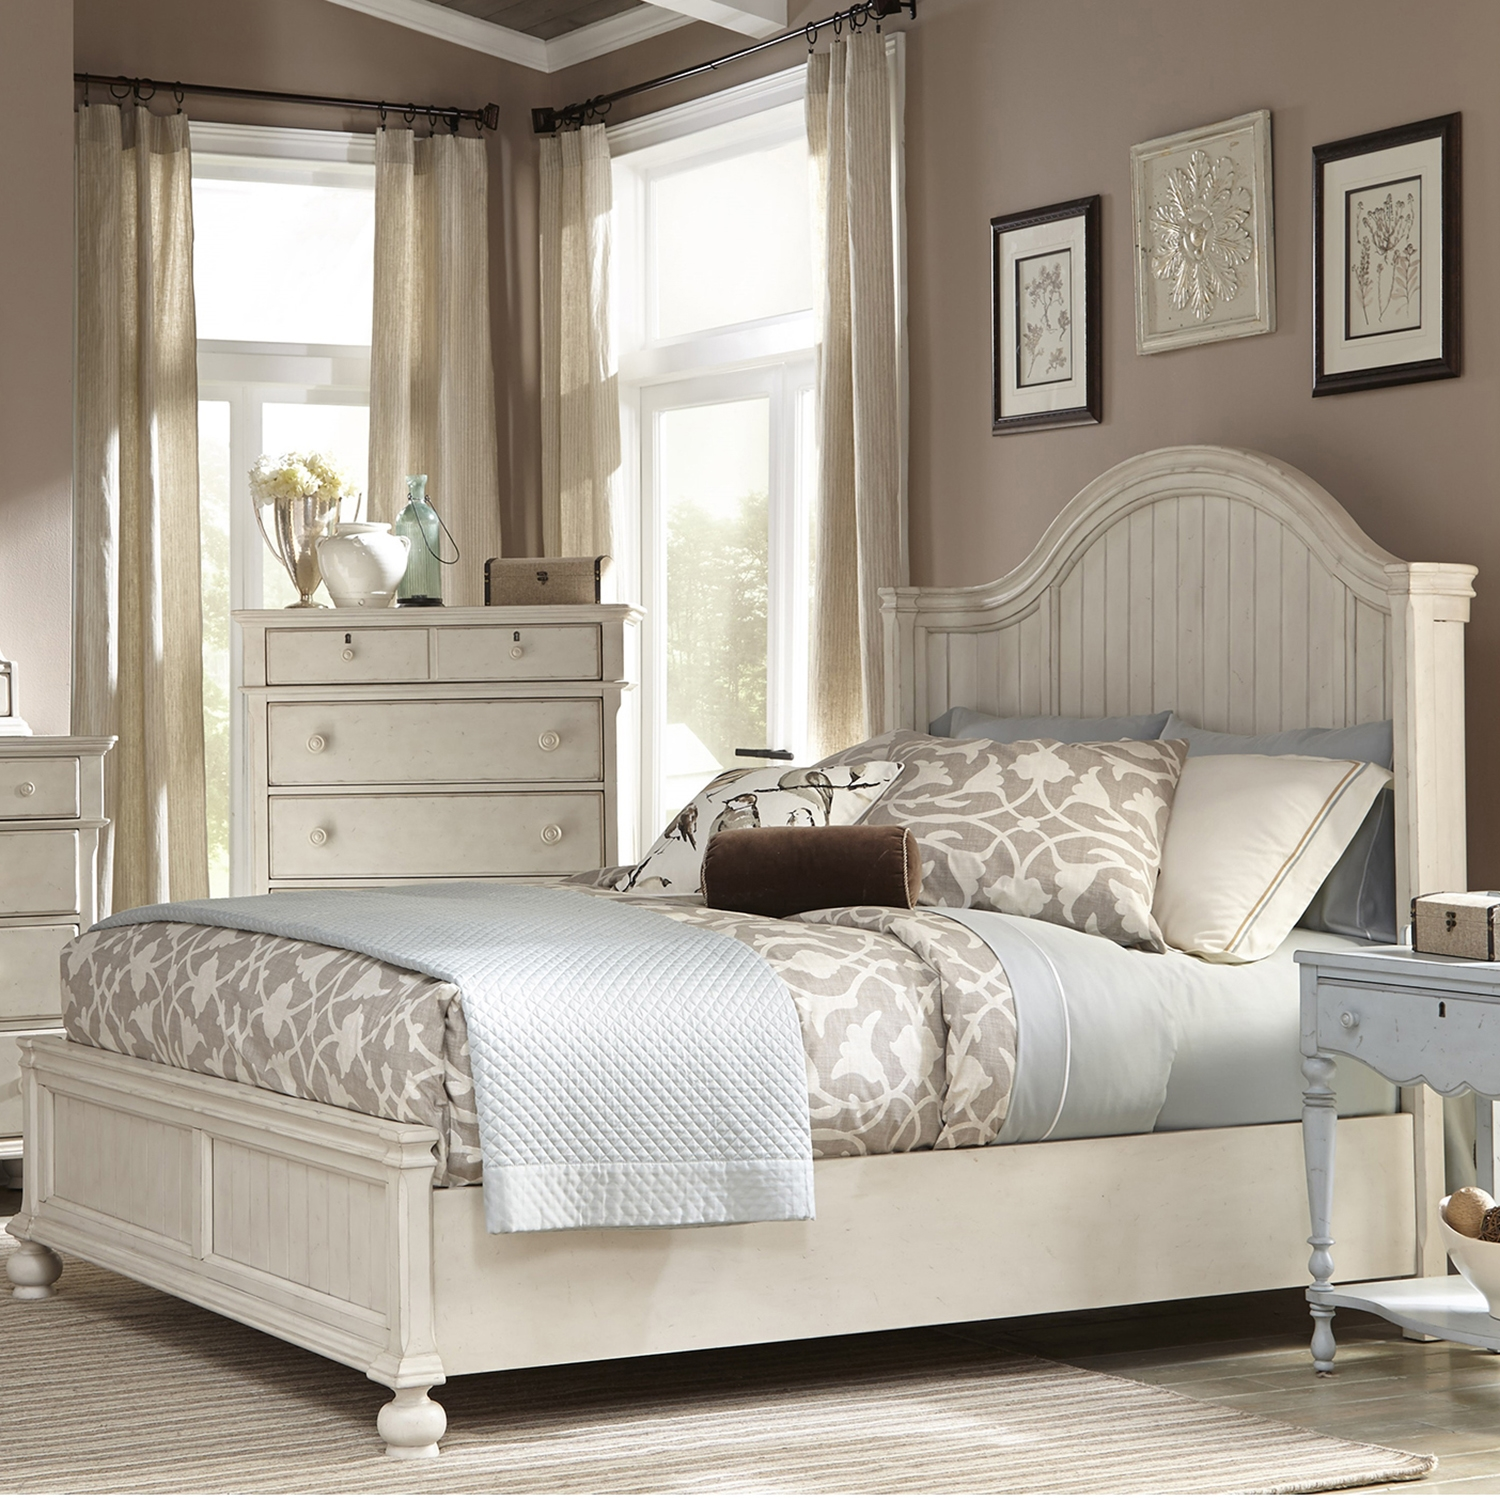 Newport King Panel Bed in Antique Birch - AW-3710-66PAN